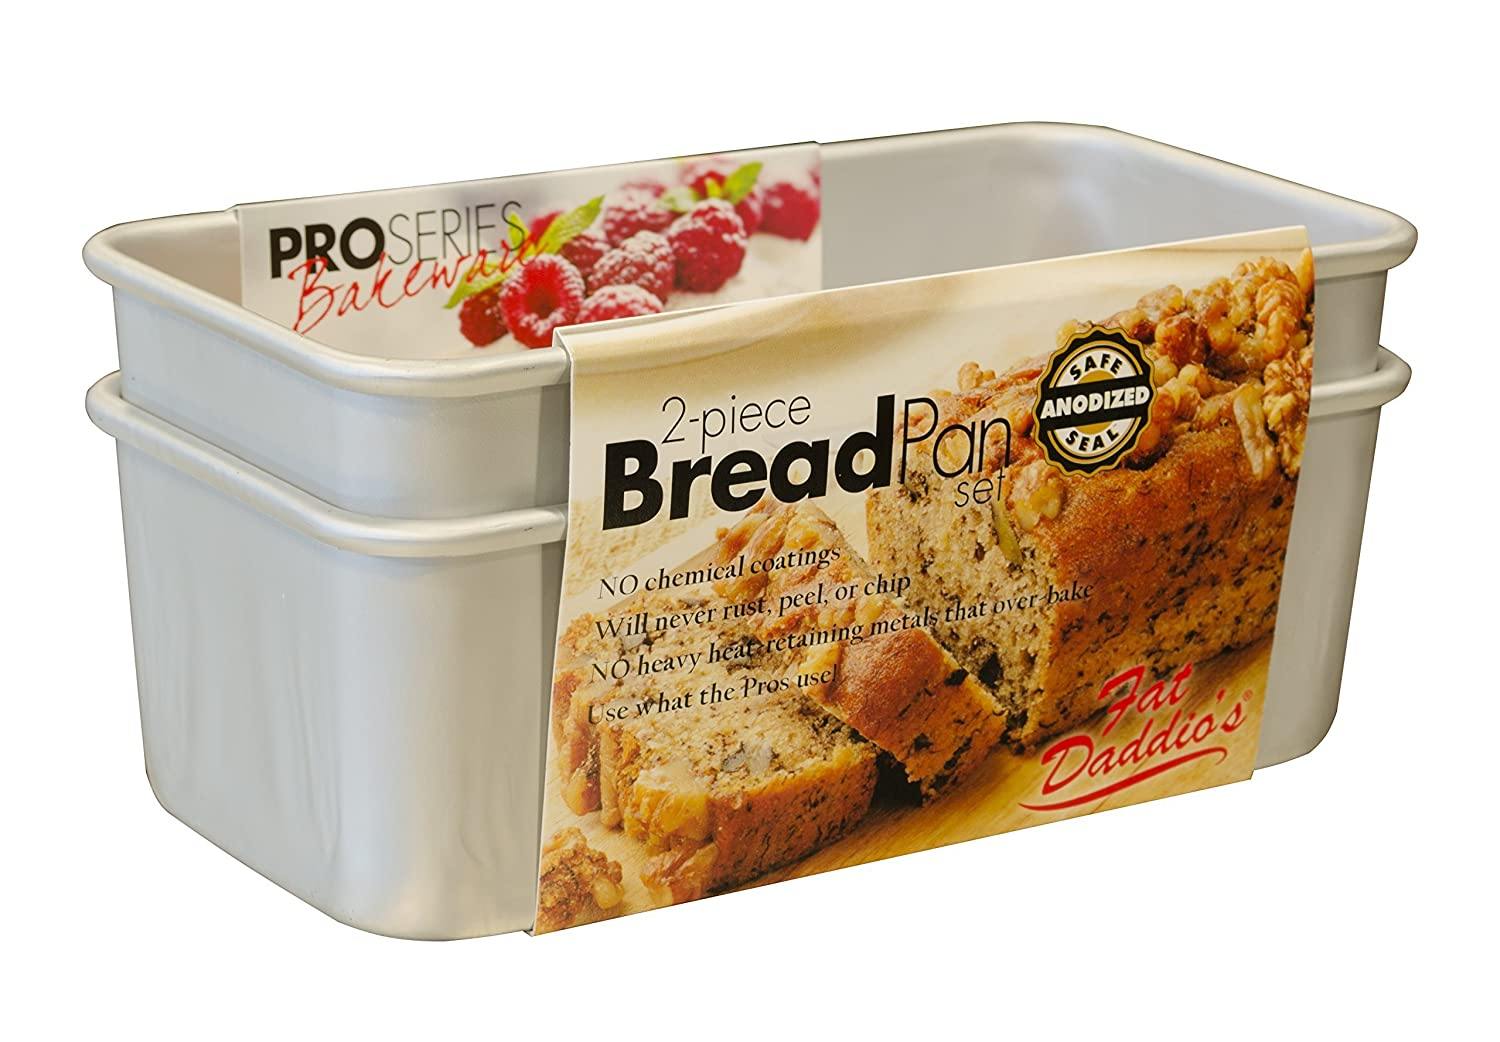 Fat Daddio'S 2-Piece Bread Pan Set Fat Daddios BP-SET